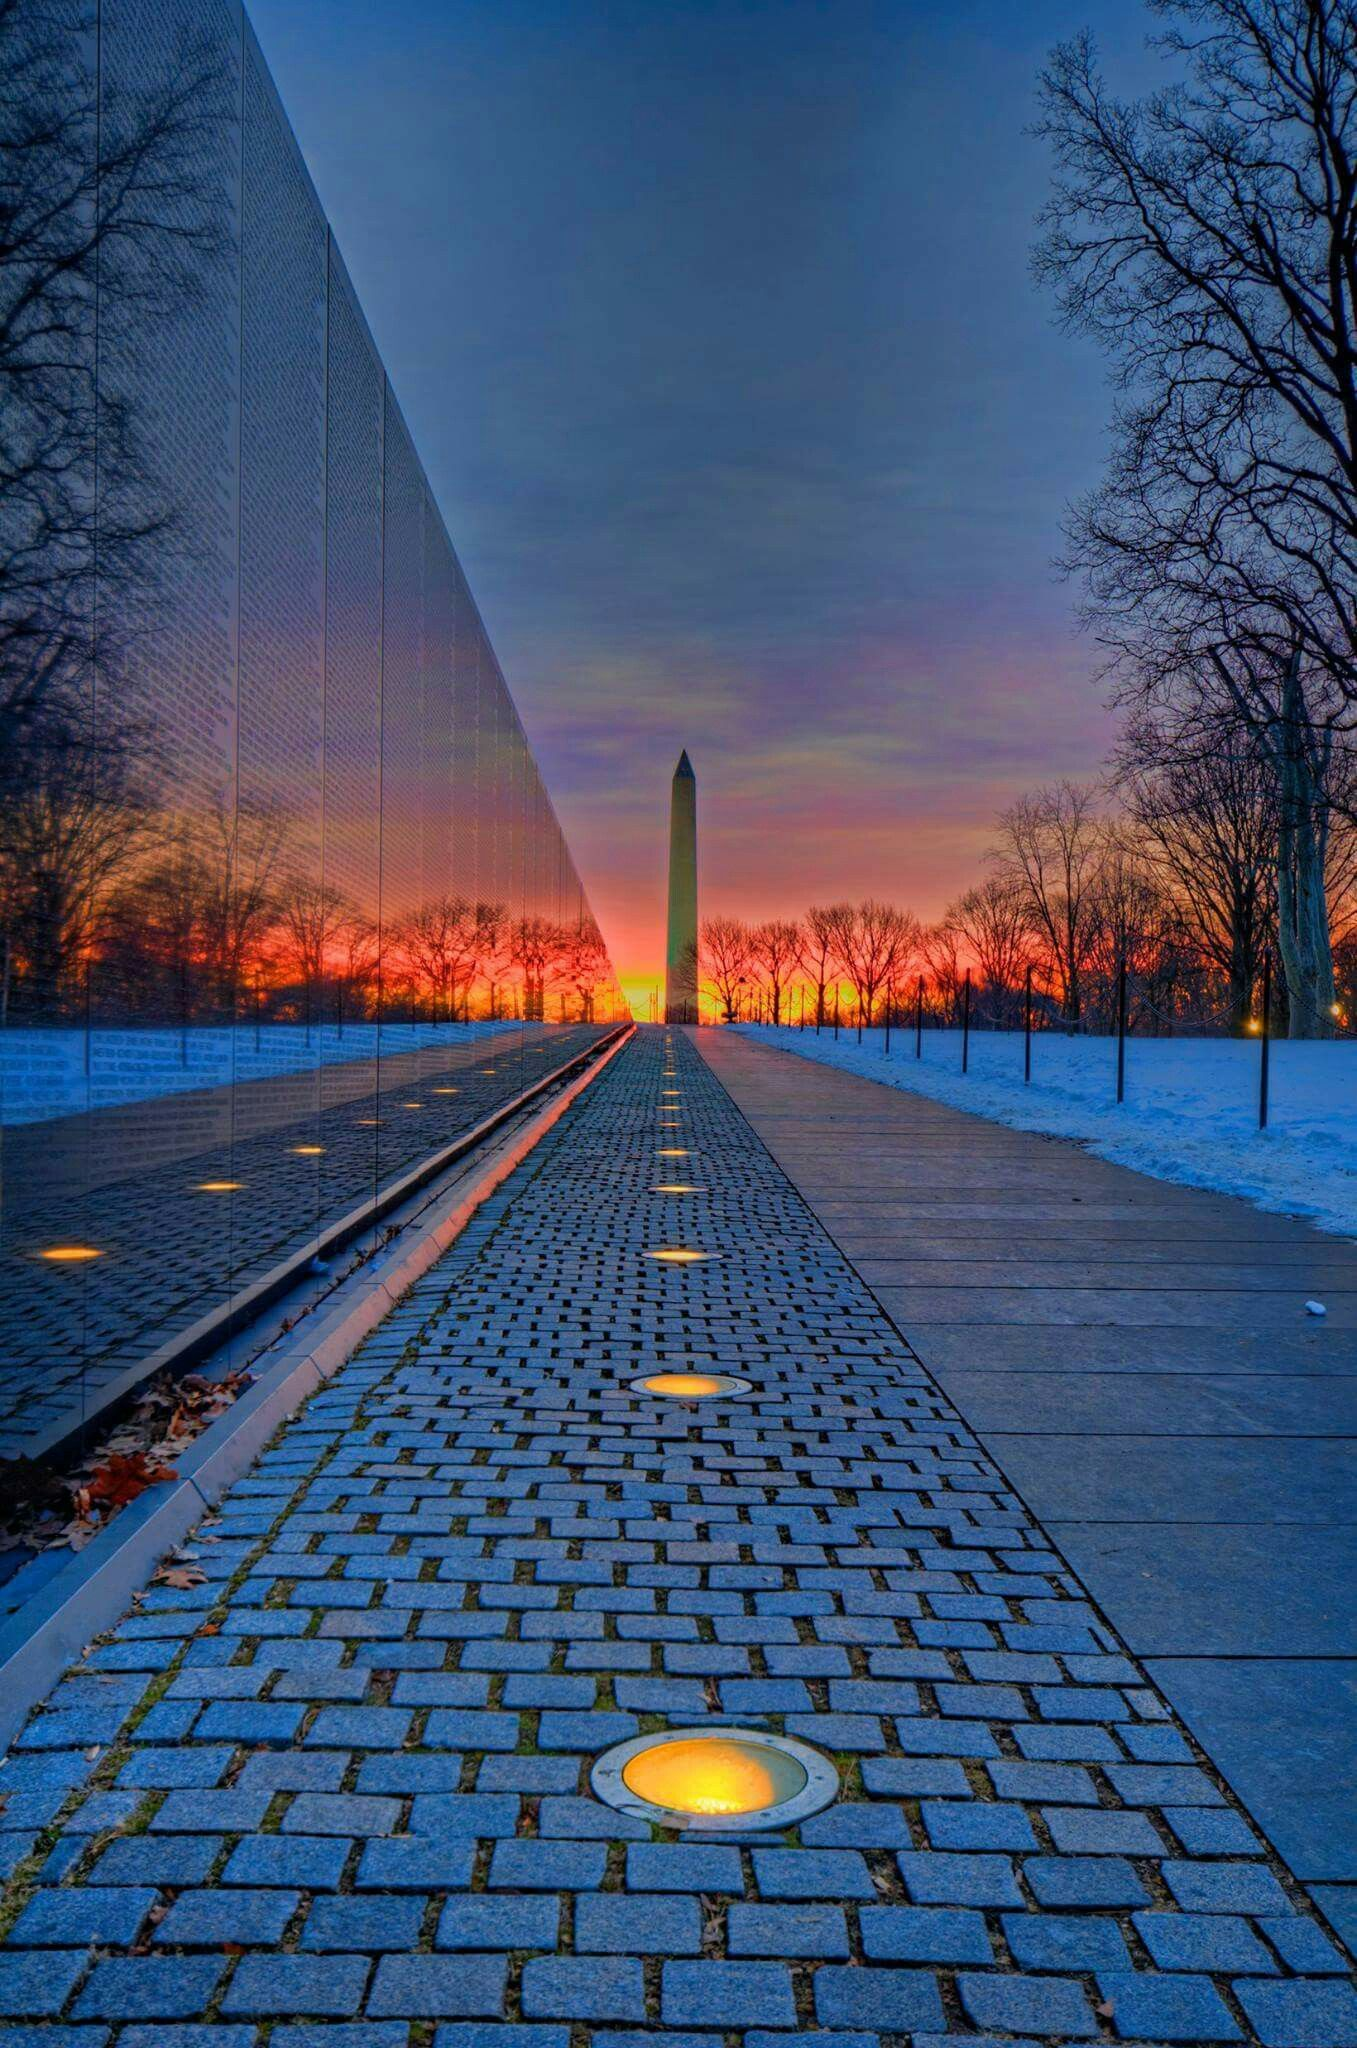 Pin by Scoop N on USA PATRIOTIC Tomb of unknown soldier